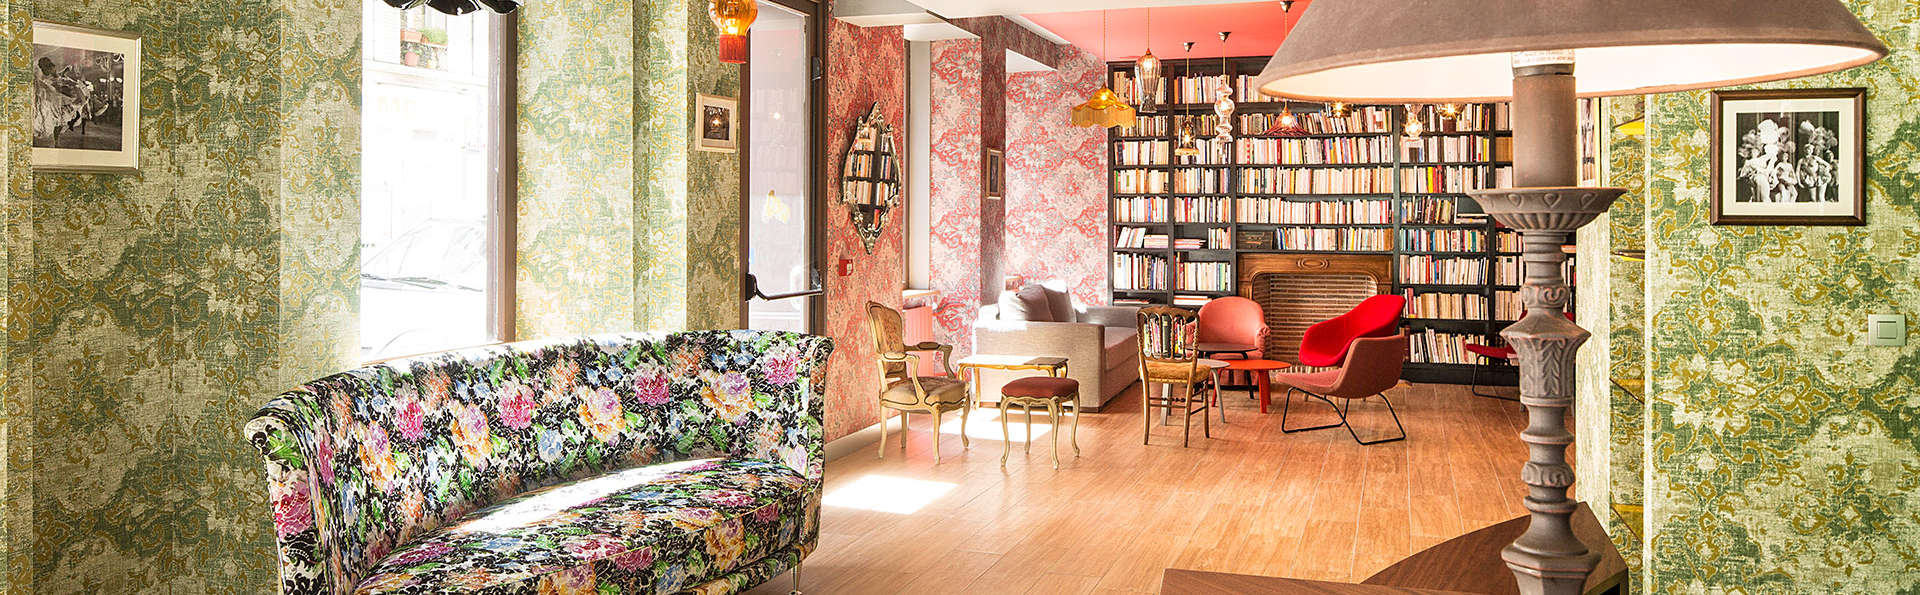 H tel jos phine by happyculture h tel de charme paris for Paris hotel de charme